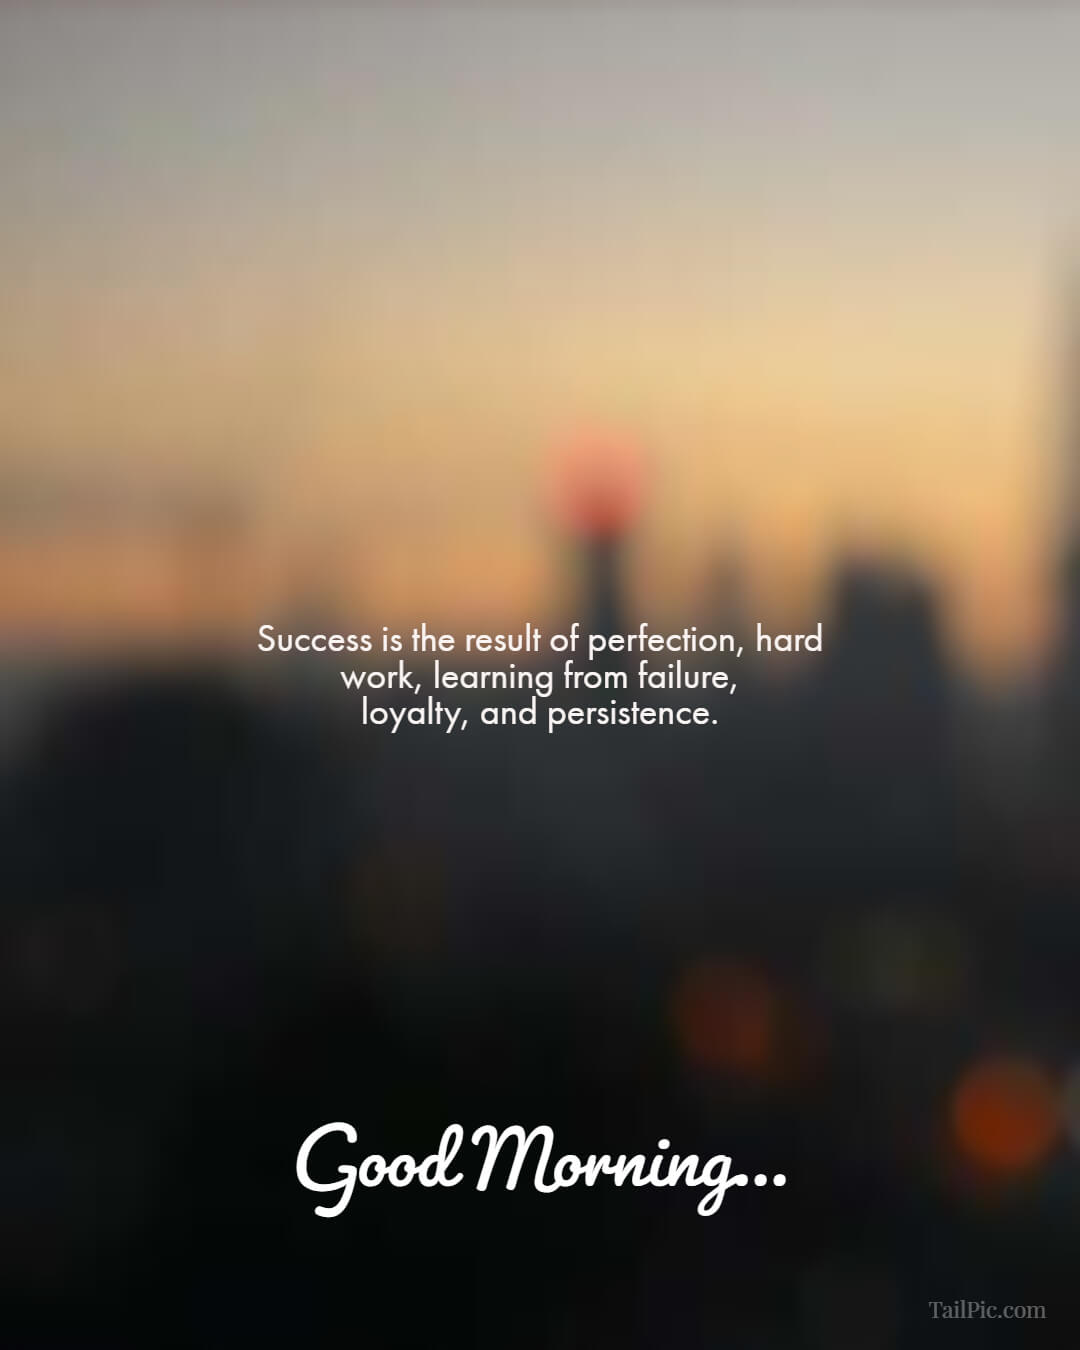 35 Good Morning Quotes And Images Positive Words for Good Morning 10